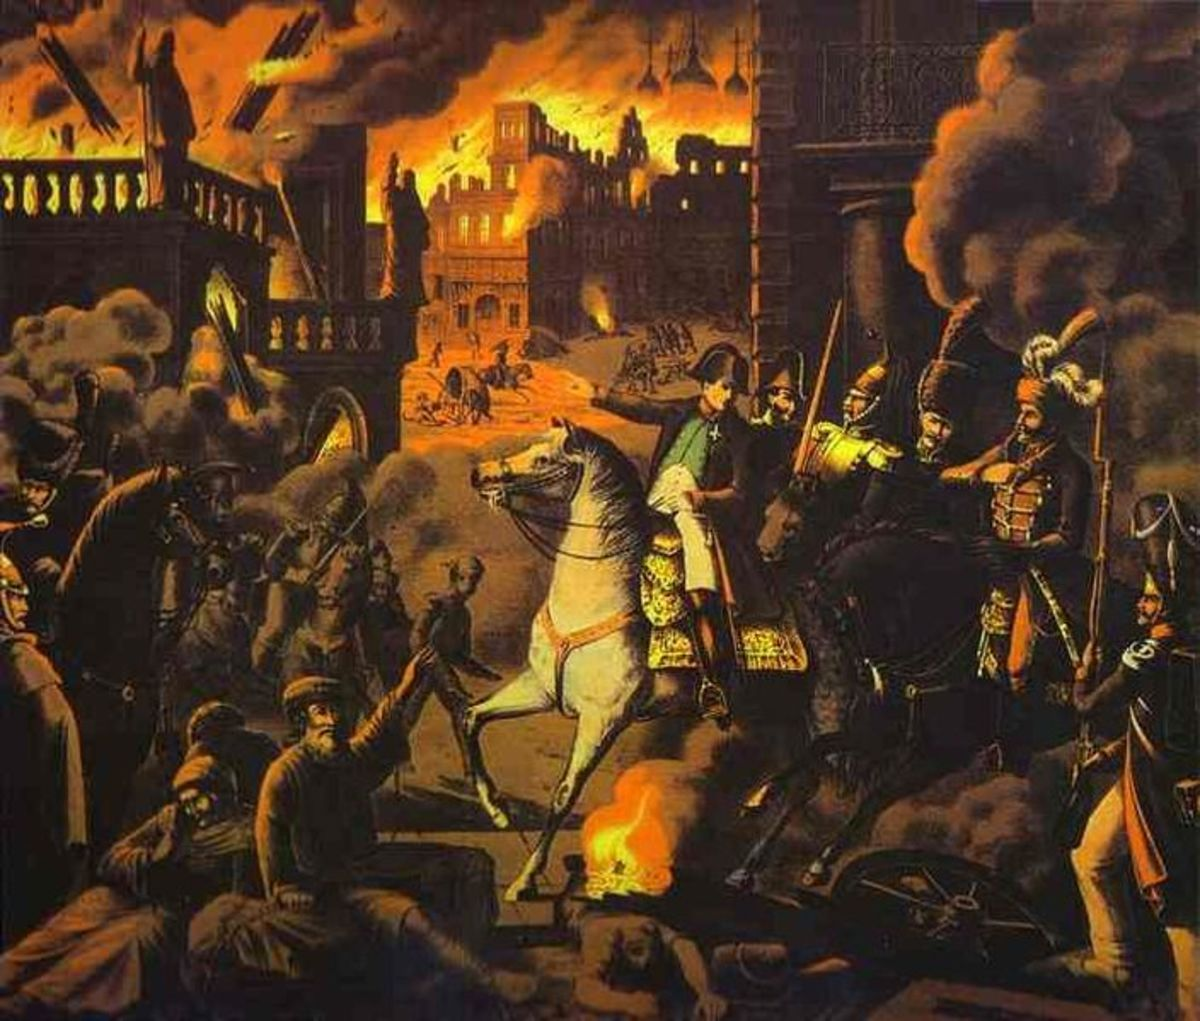 The Grande Armee set fire to Moscow's wooden buildings, as a result of a complete collapse in morale and discipline. Looting was widespread and an estimated four fifths of the city was destroyed by the fires.